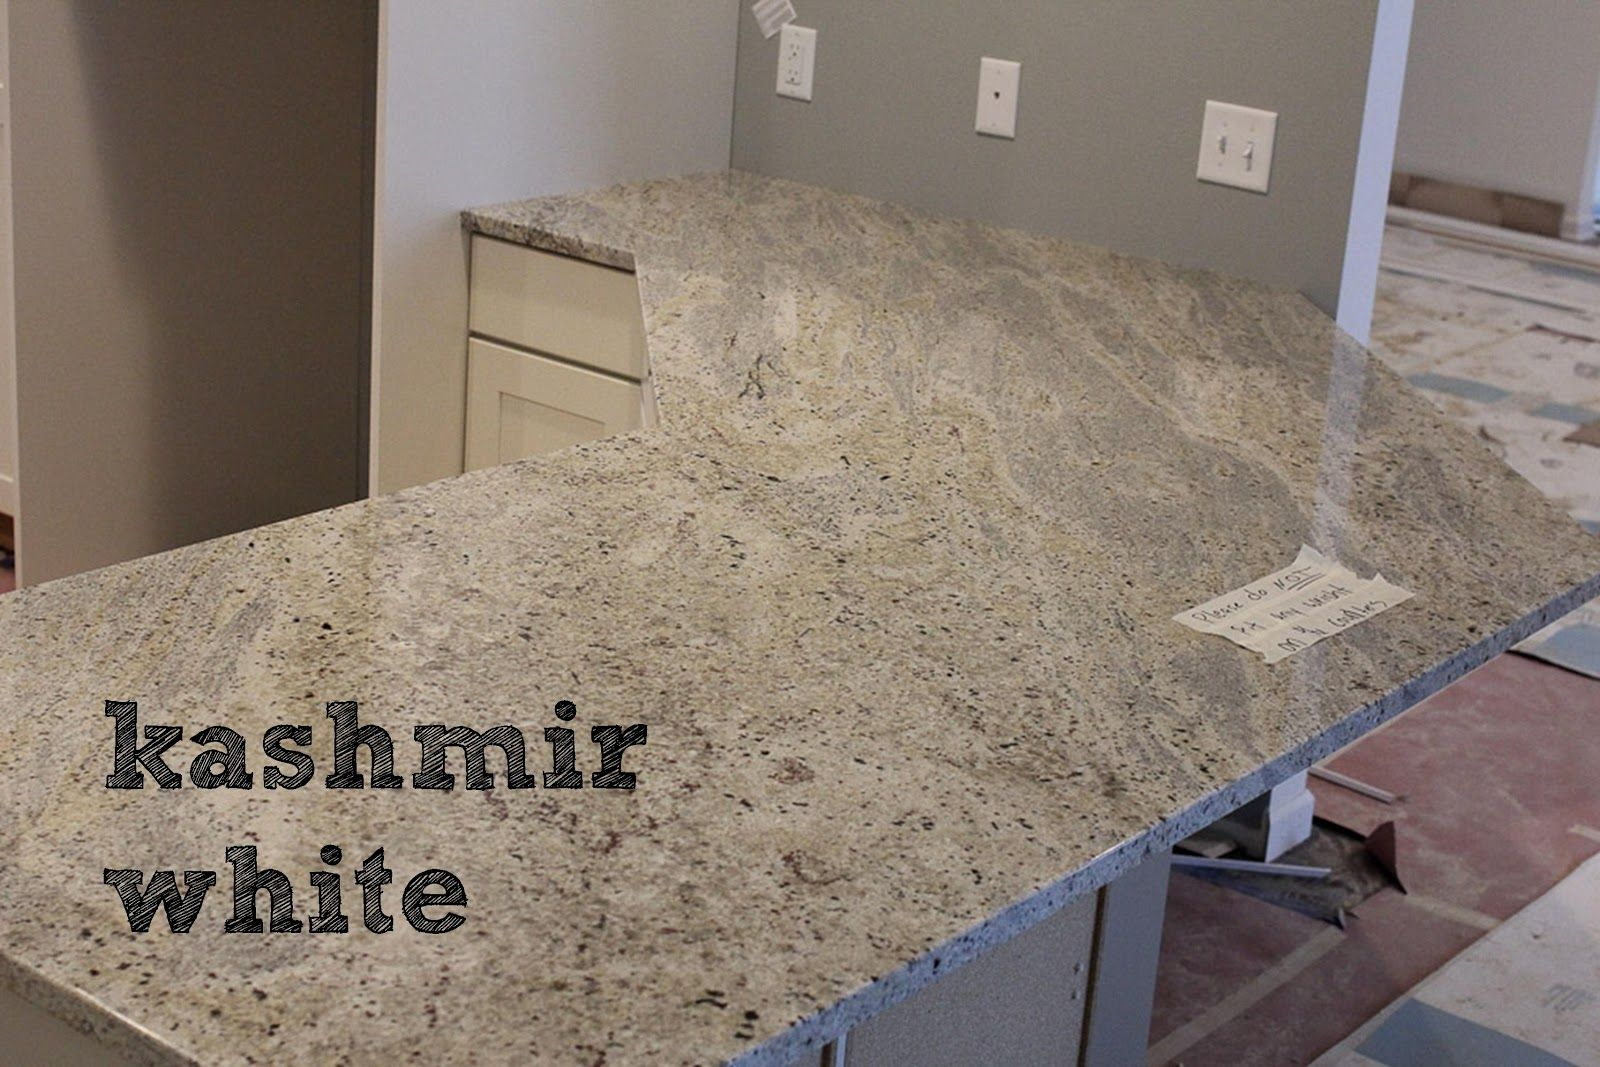 Kashmir White Granite Lot 23 Day 128 Our New Abode